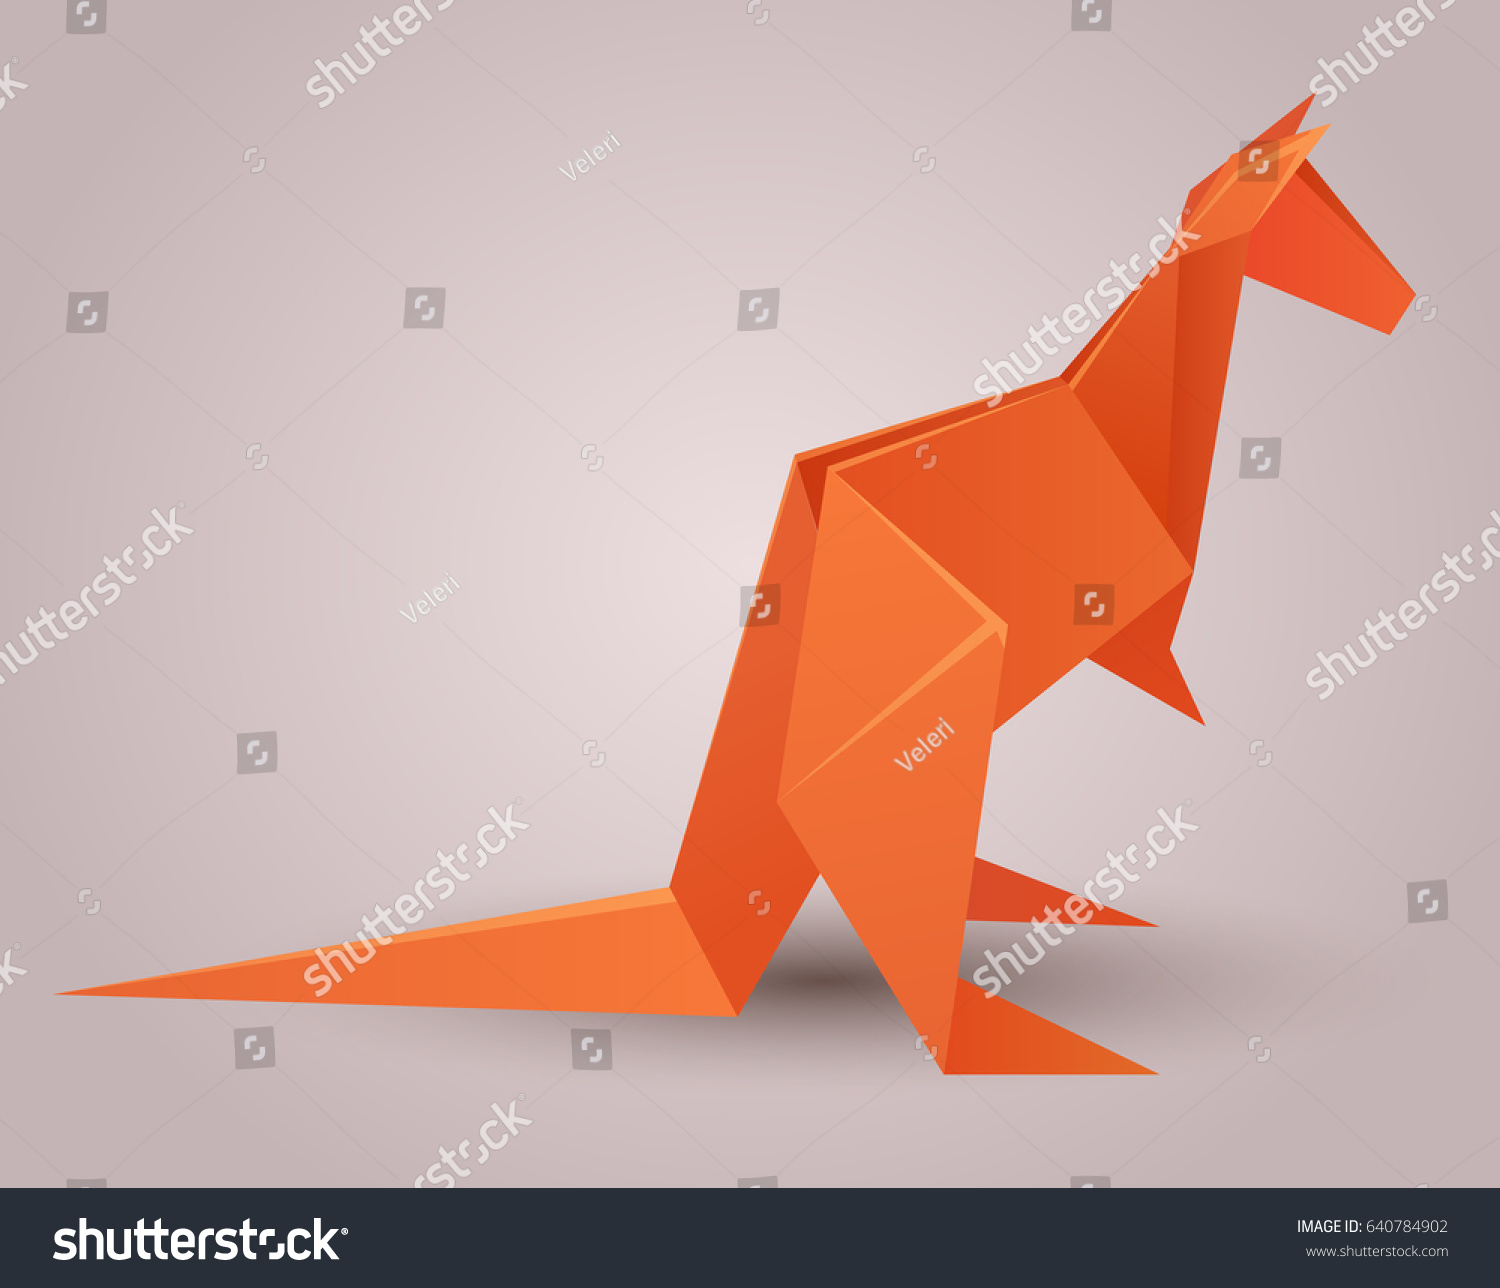 Illustration Of A Paper Origami Kangaroo Zoo Vector Element For Your Design